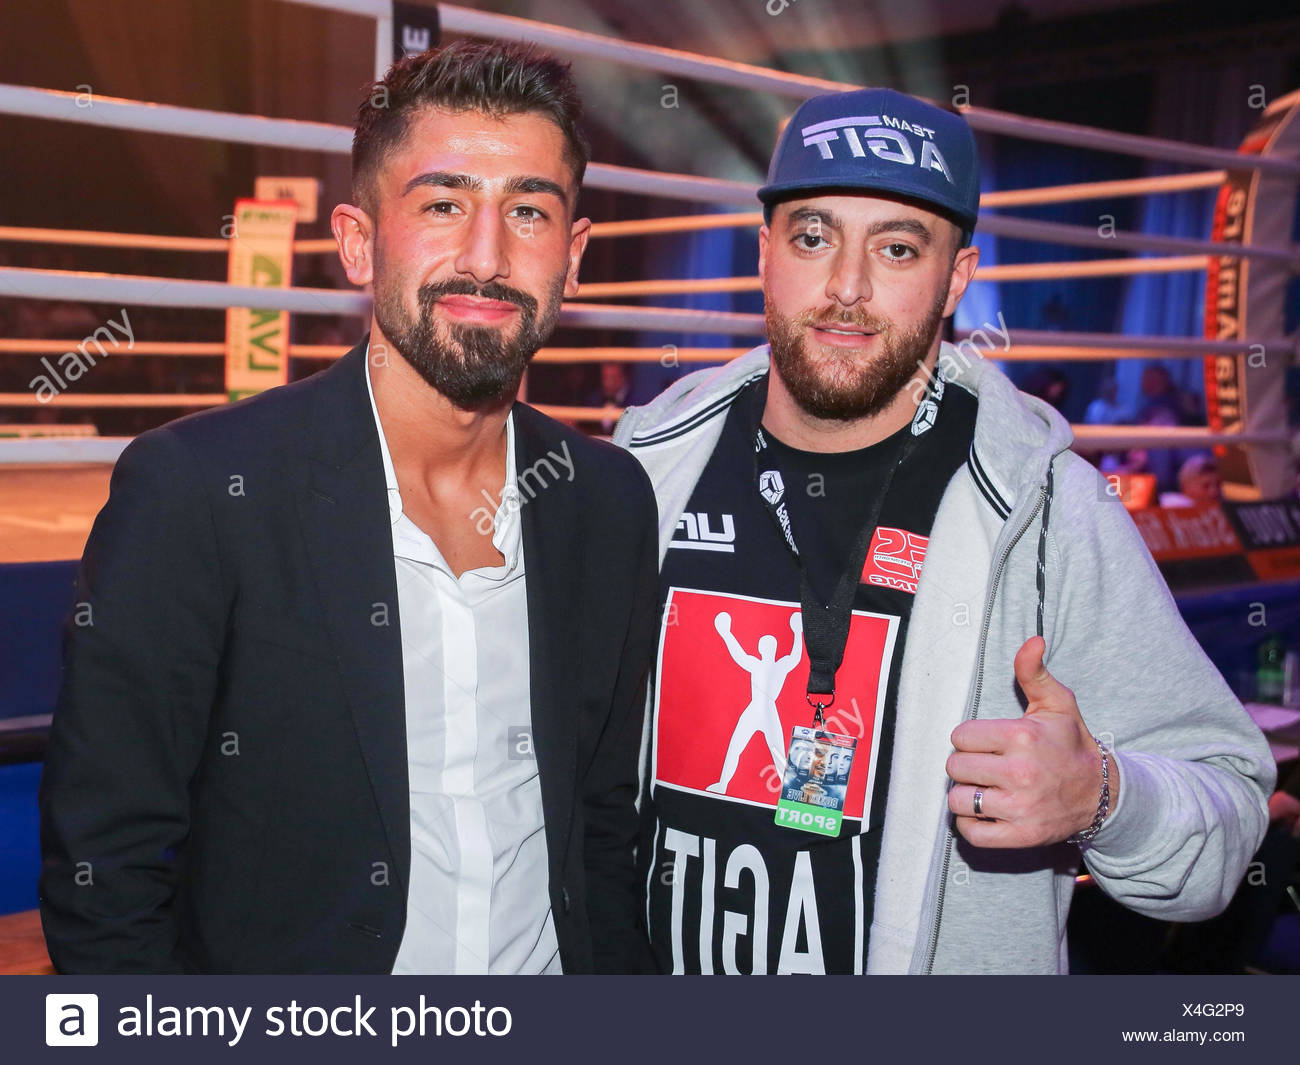 Rapper KC Rebell and Footballer Kerem Demirbay (TSG Hoffenheim) - Stock Image